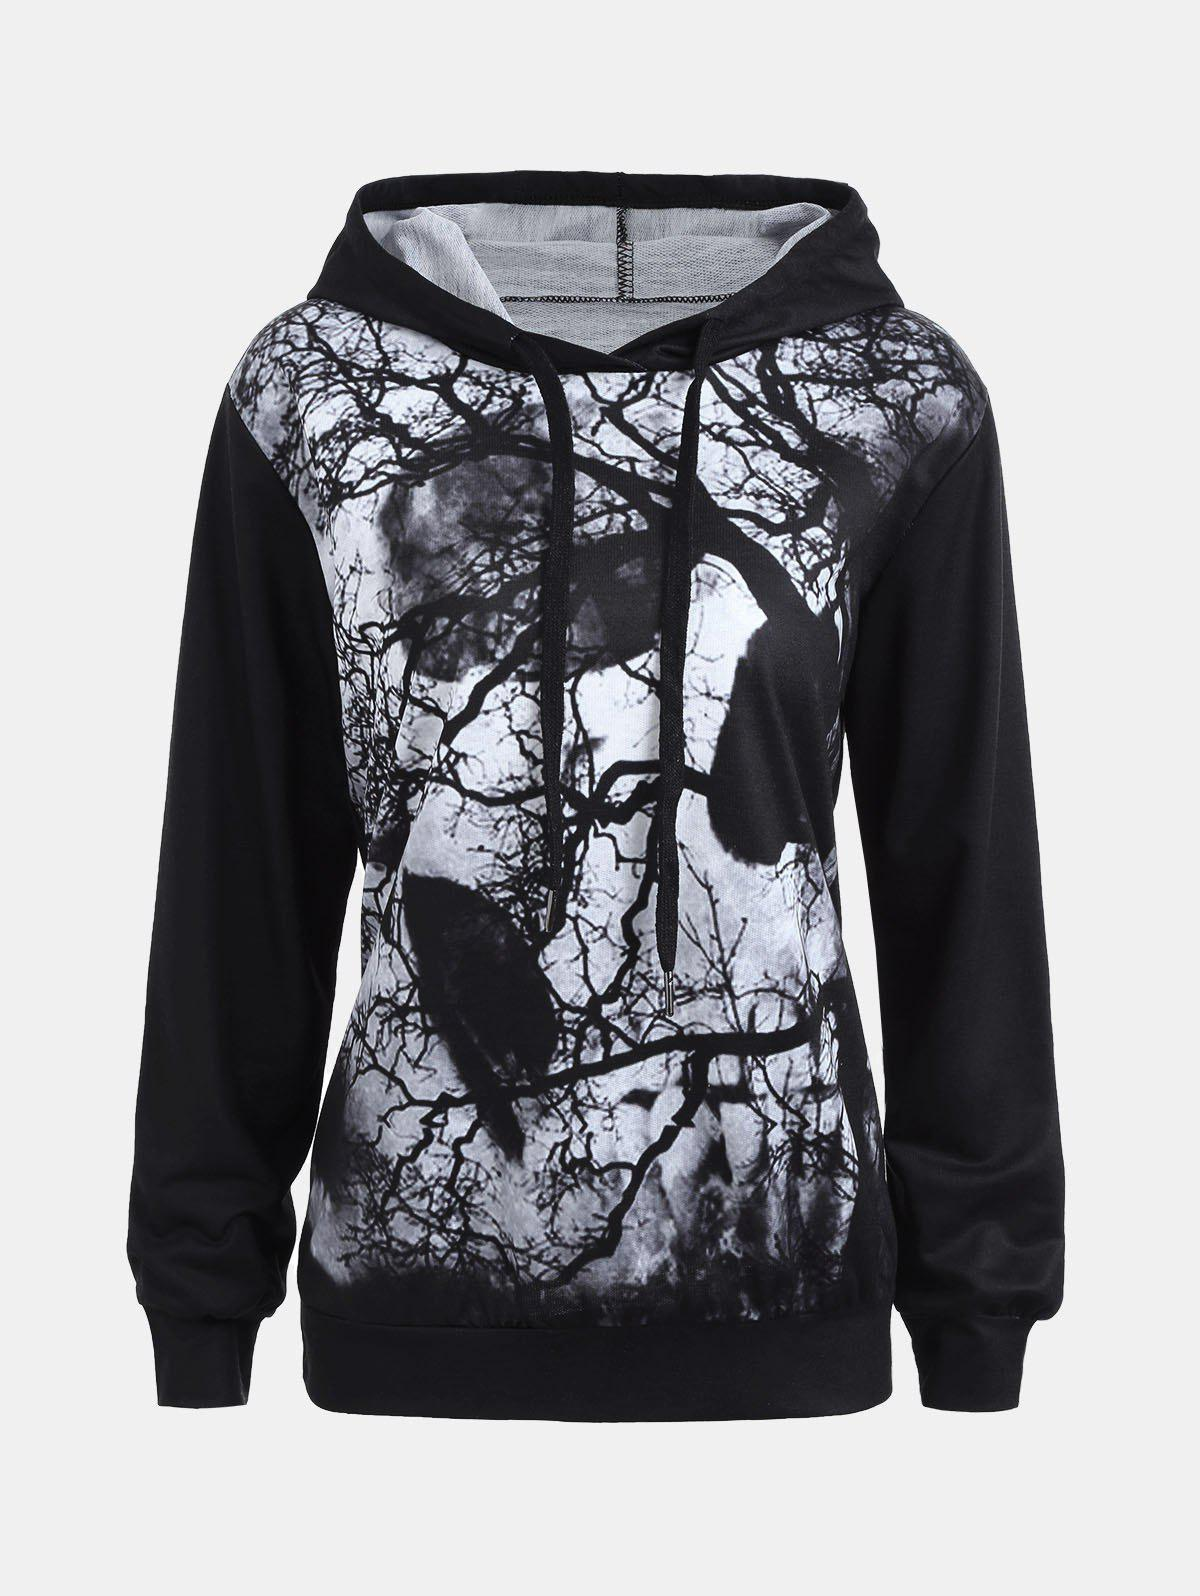 Dark Forest Skull Print Halloween HoodieWOMEN<br><br>Size: L; Color: BLACK; Material: Polyester; Shirt Length: Regular; Sleeve Length: Full; Style: Gothic; Pattern Style: Plant,Print,Skulls; Elasticity: Micro-elastic; Season: Fall,Spring,Winter; Weight: 0.3300kg; Package Contents: 1 x Hoodie;